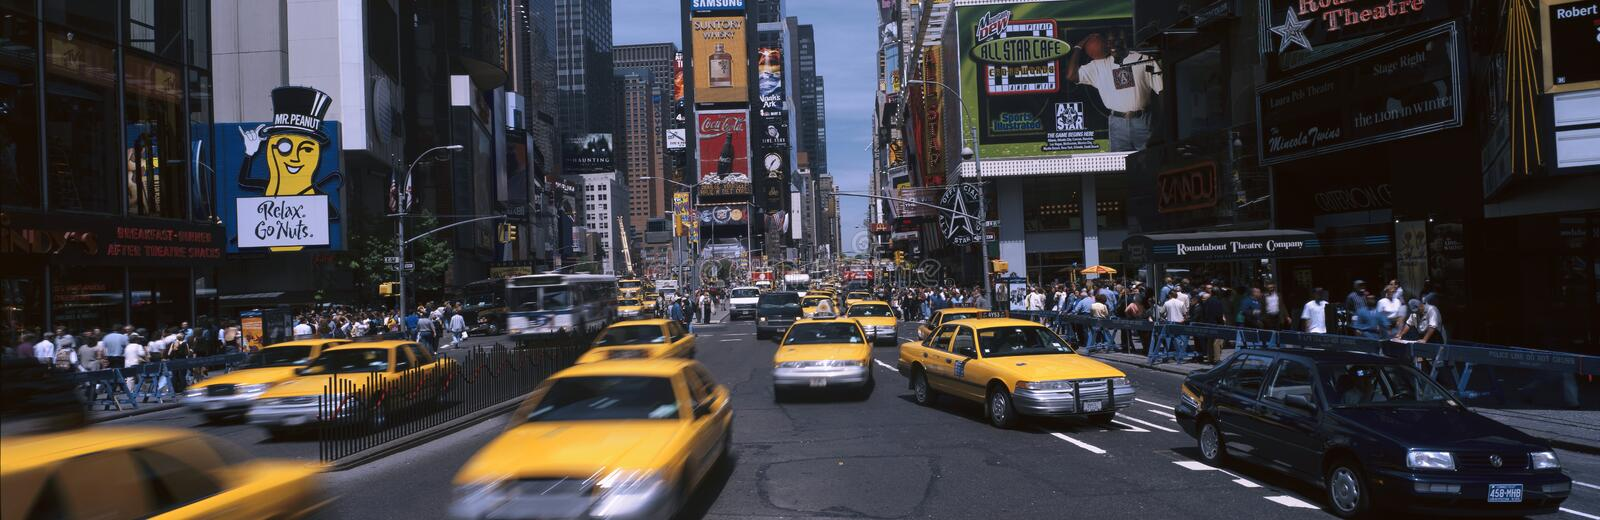 Times Square with yellow taxis during the day royalty free stock photography